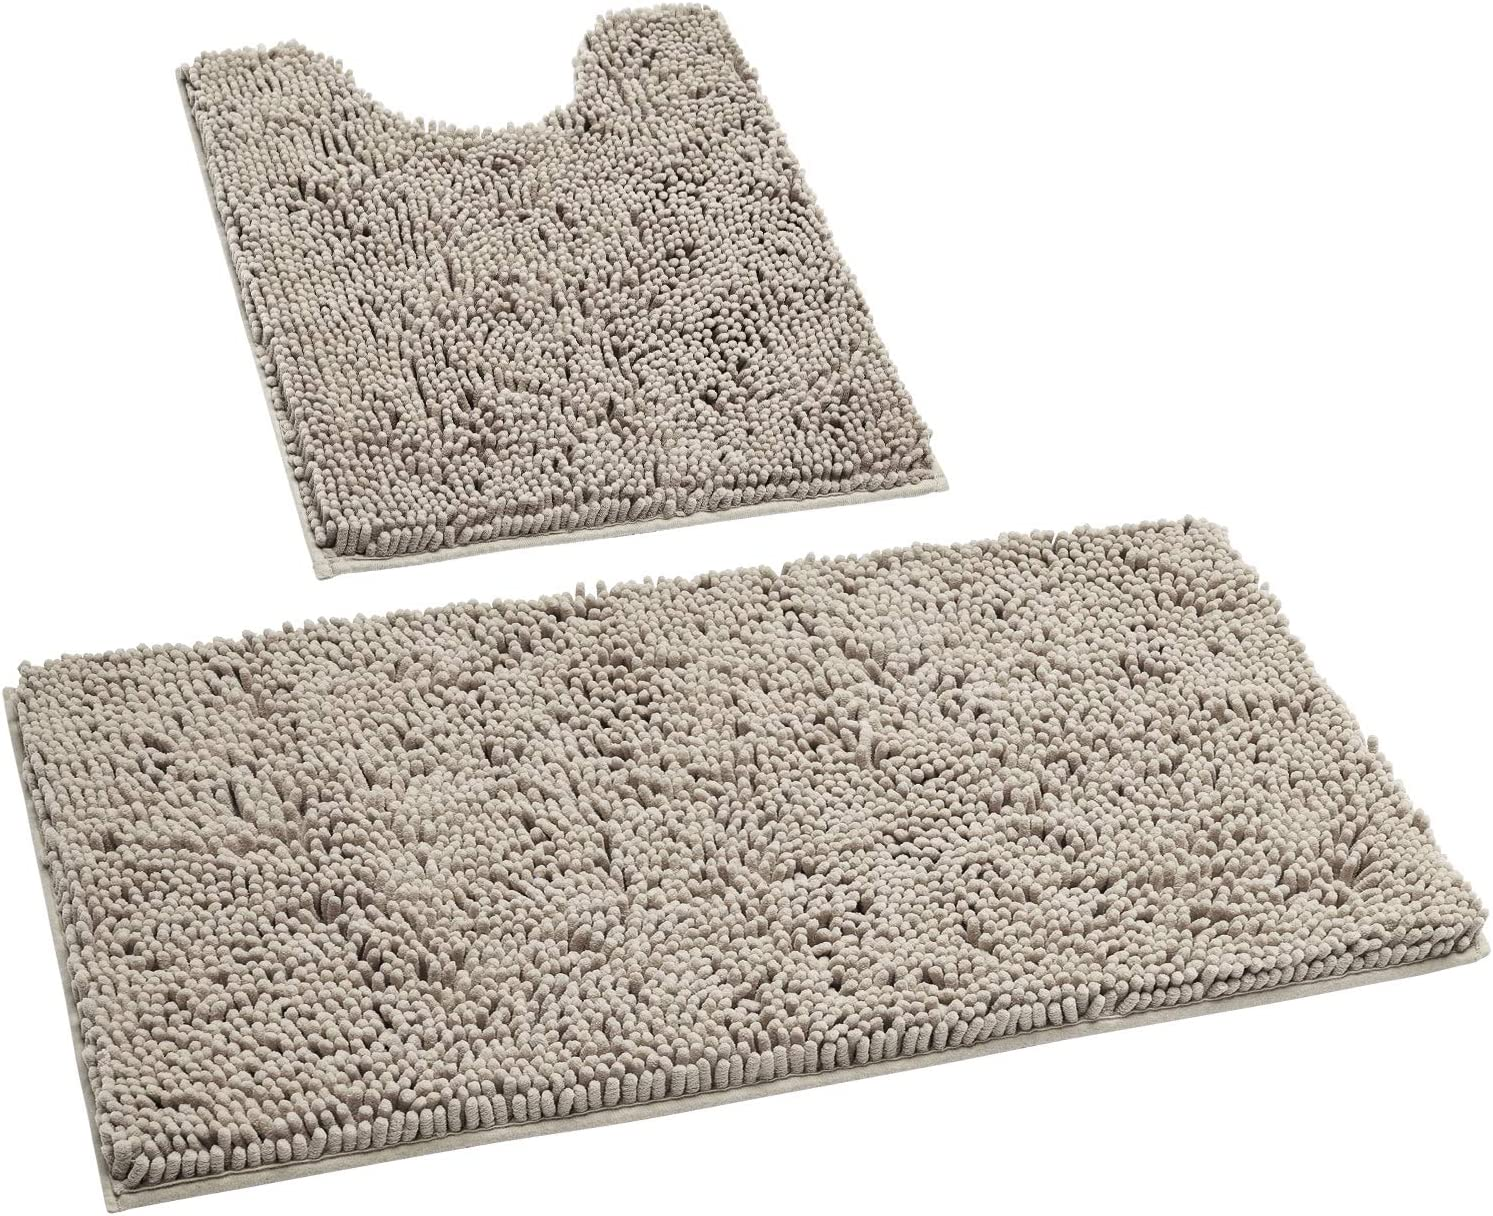 HOMEIDEAS 2 Pieces Bathroom Rugs Set Taupe, Luxury Soft Chenille Bath Mats Set, Absorbent Shaggy Bath Rugs & Slip Resistant Plush Carpets Mats for Tub, Shower , Bathroom